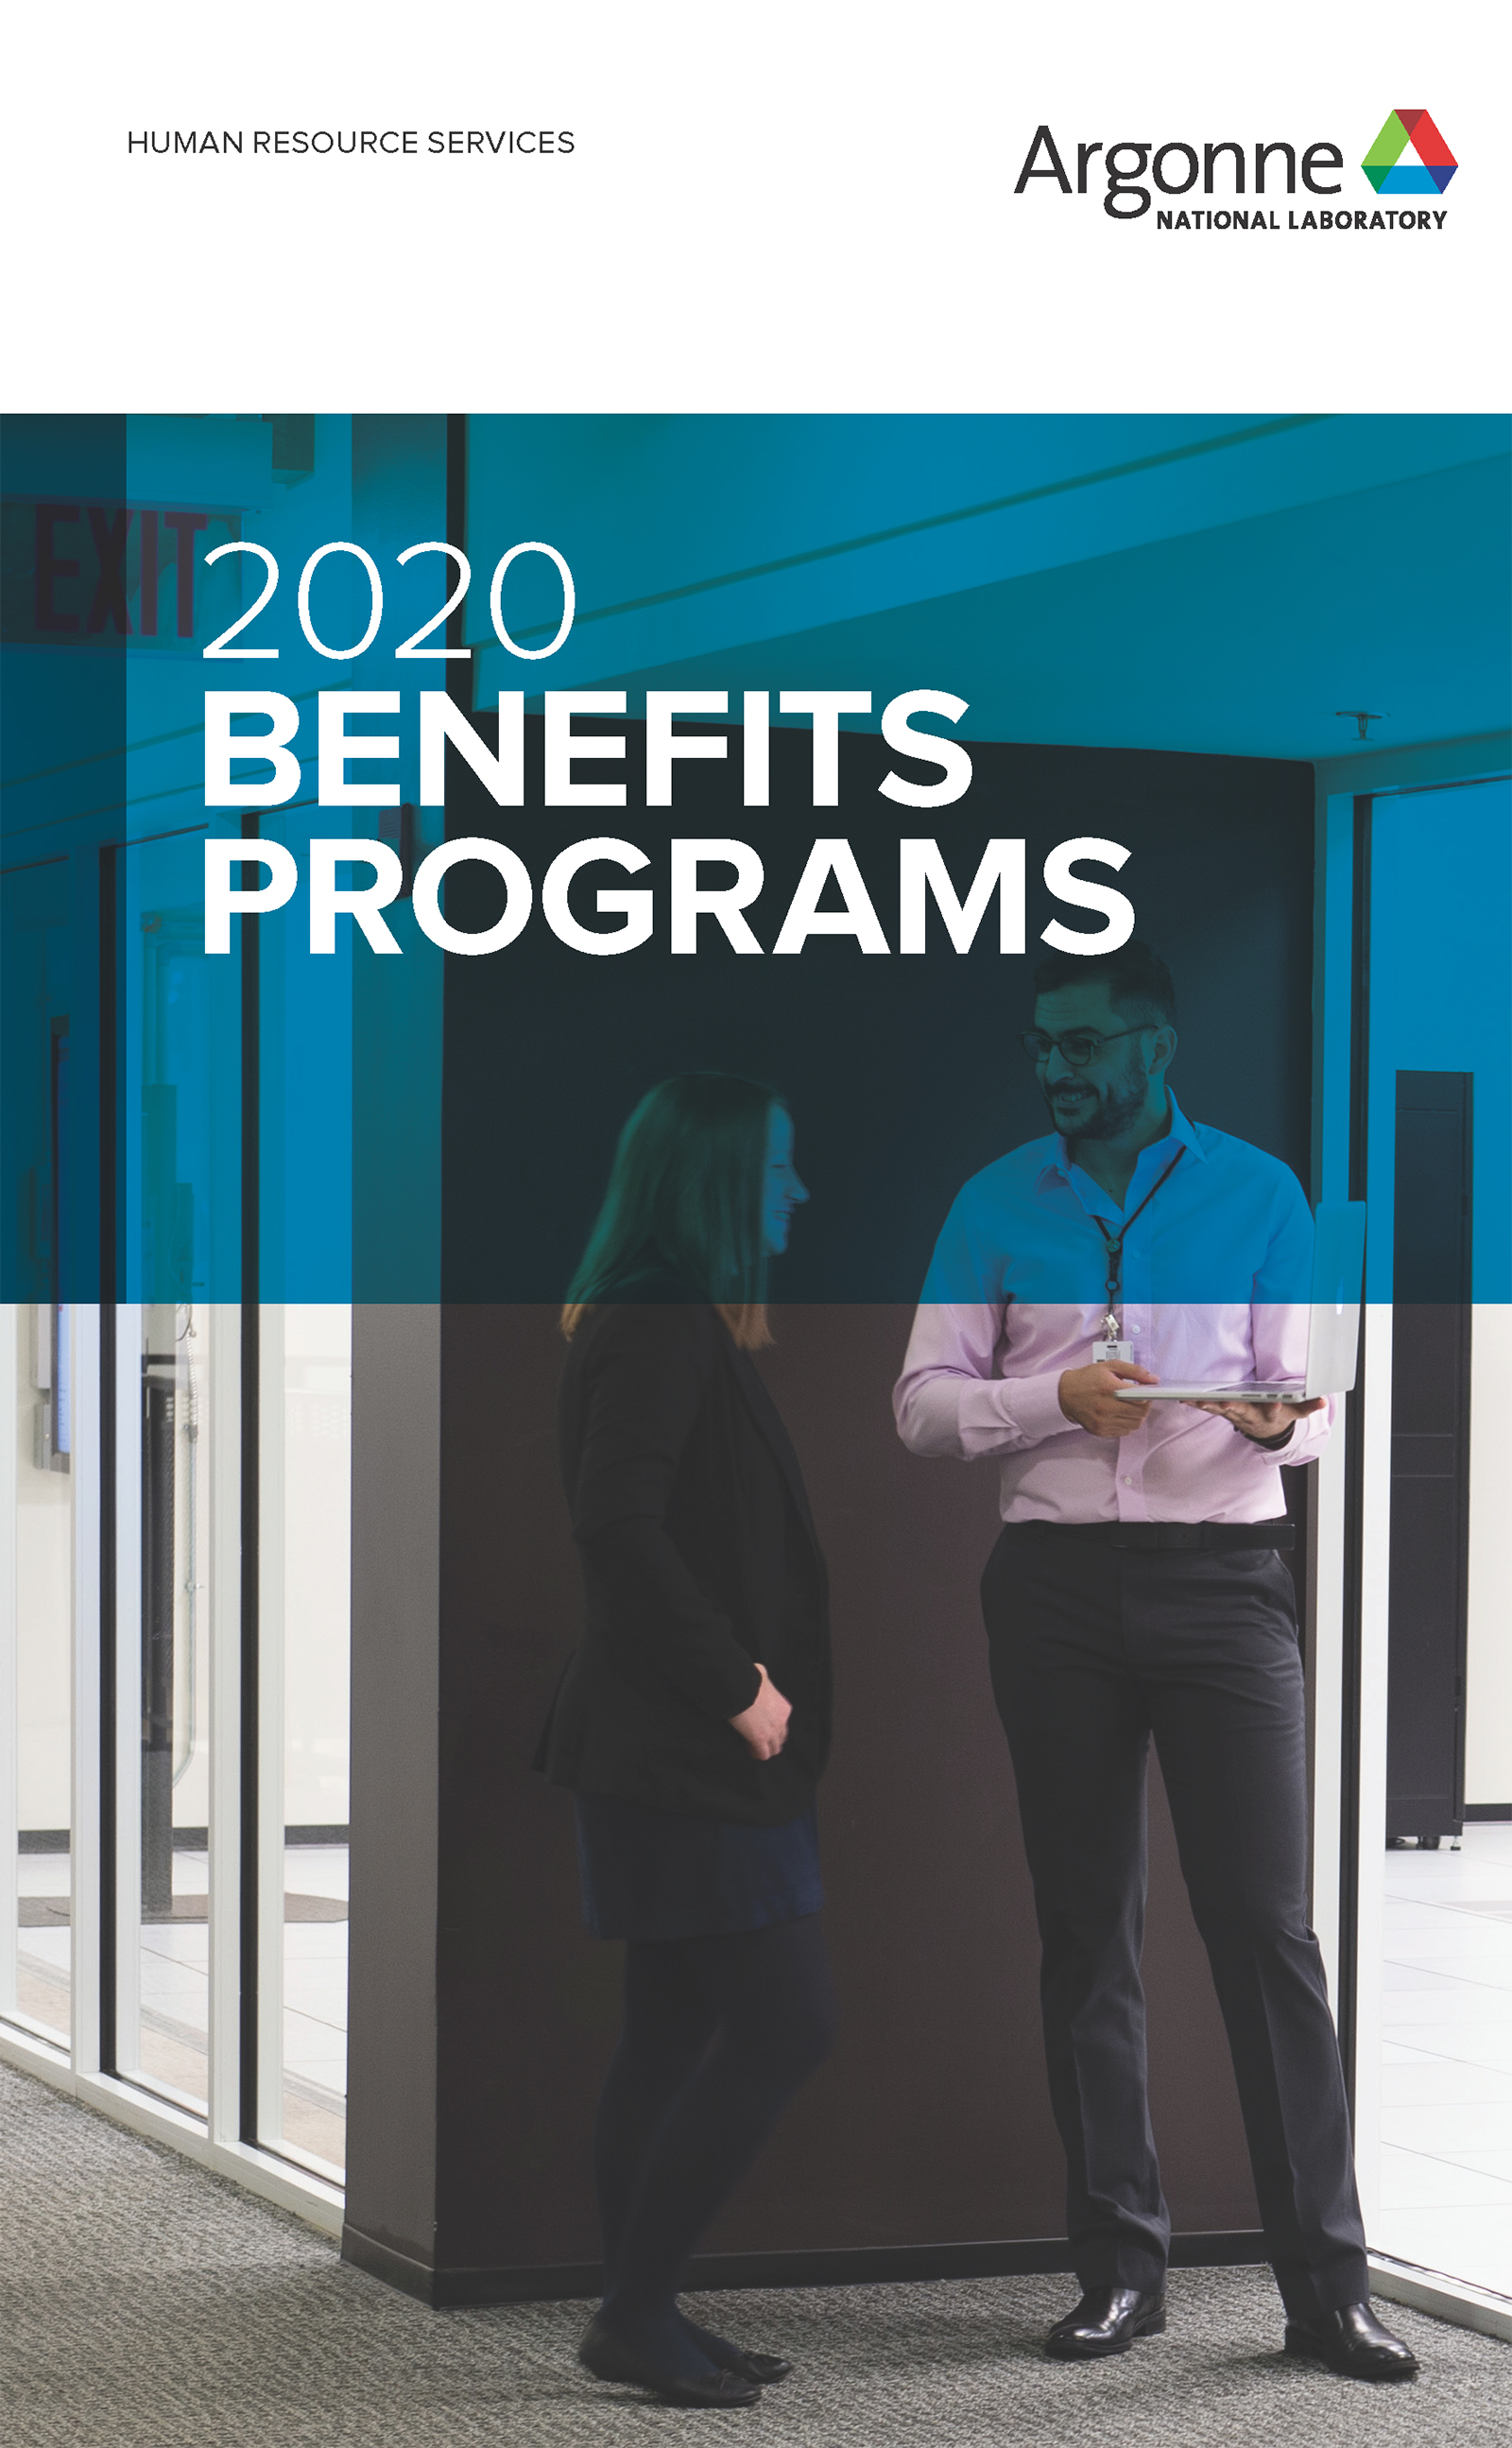 Argonne National Laboratory 2020 Benefits Program